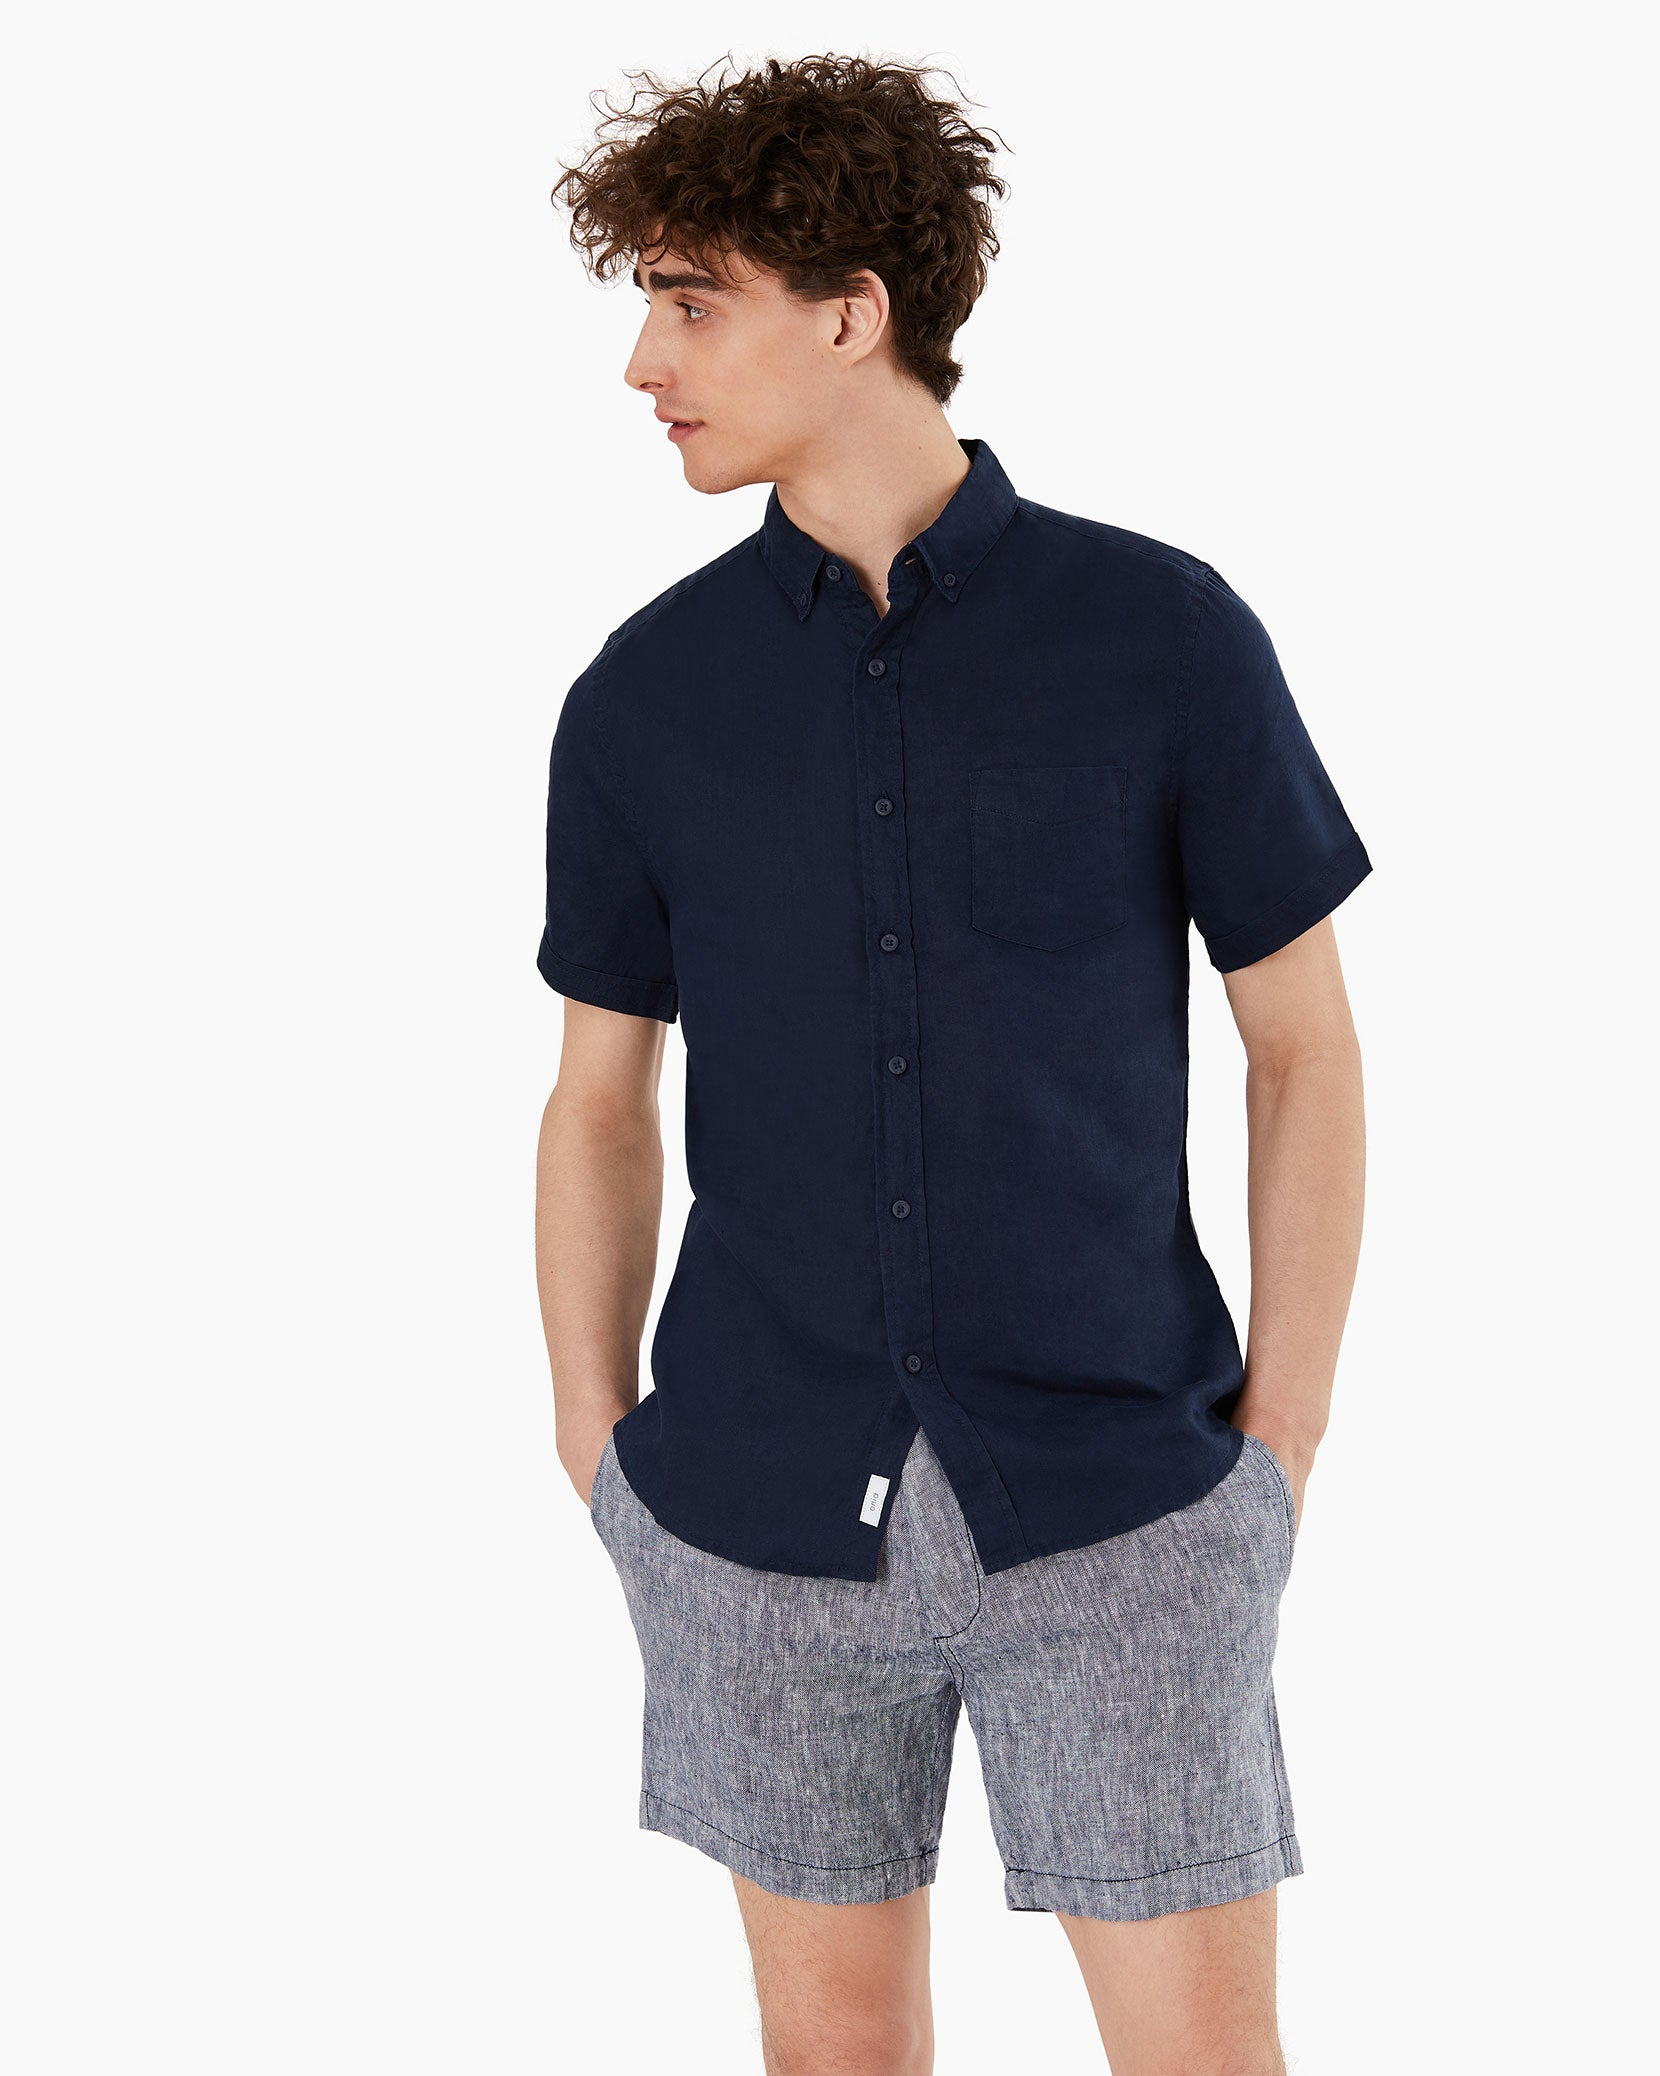 Stretch Linen Short Sleeve Shirt in Deep Navy - 8 - Onia